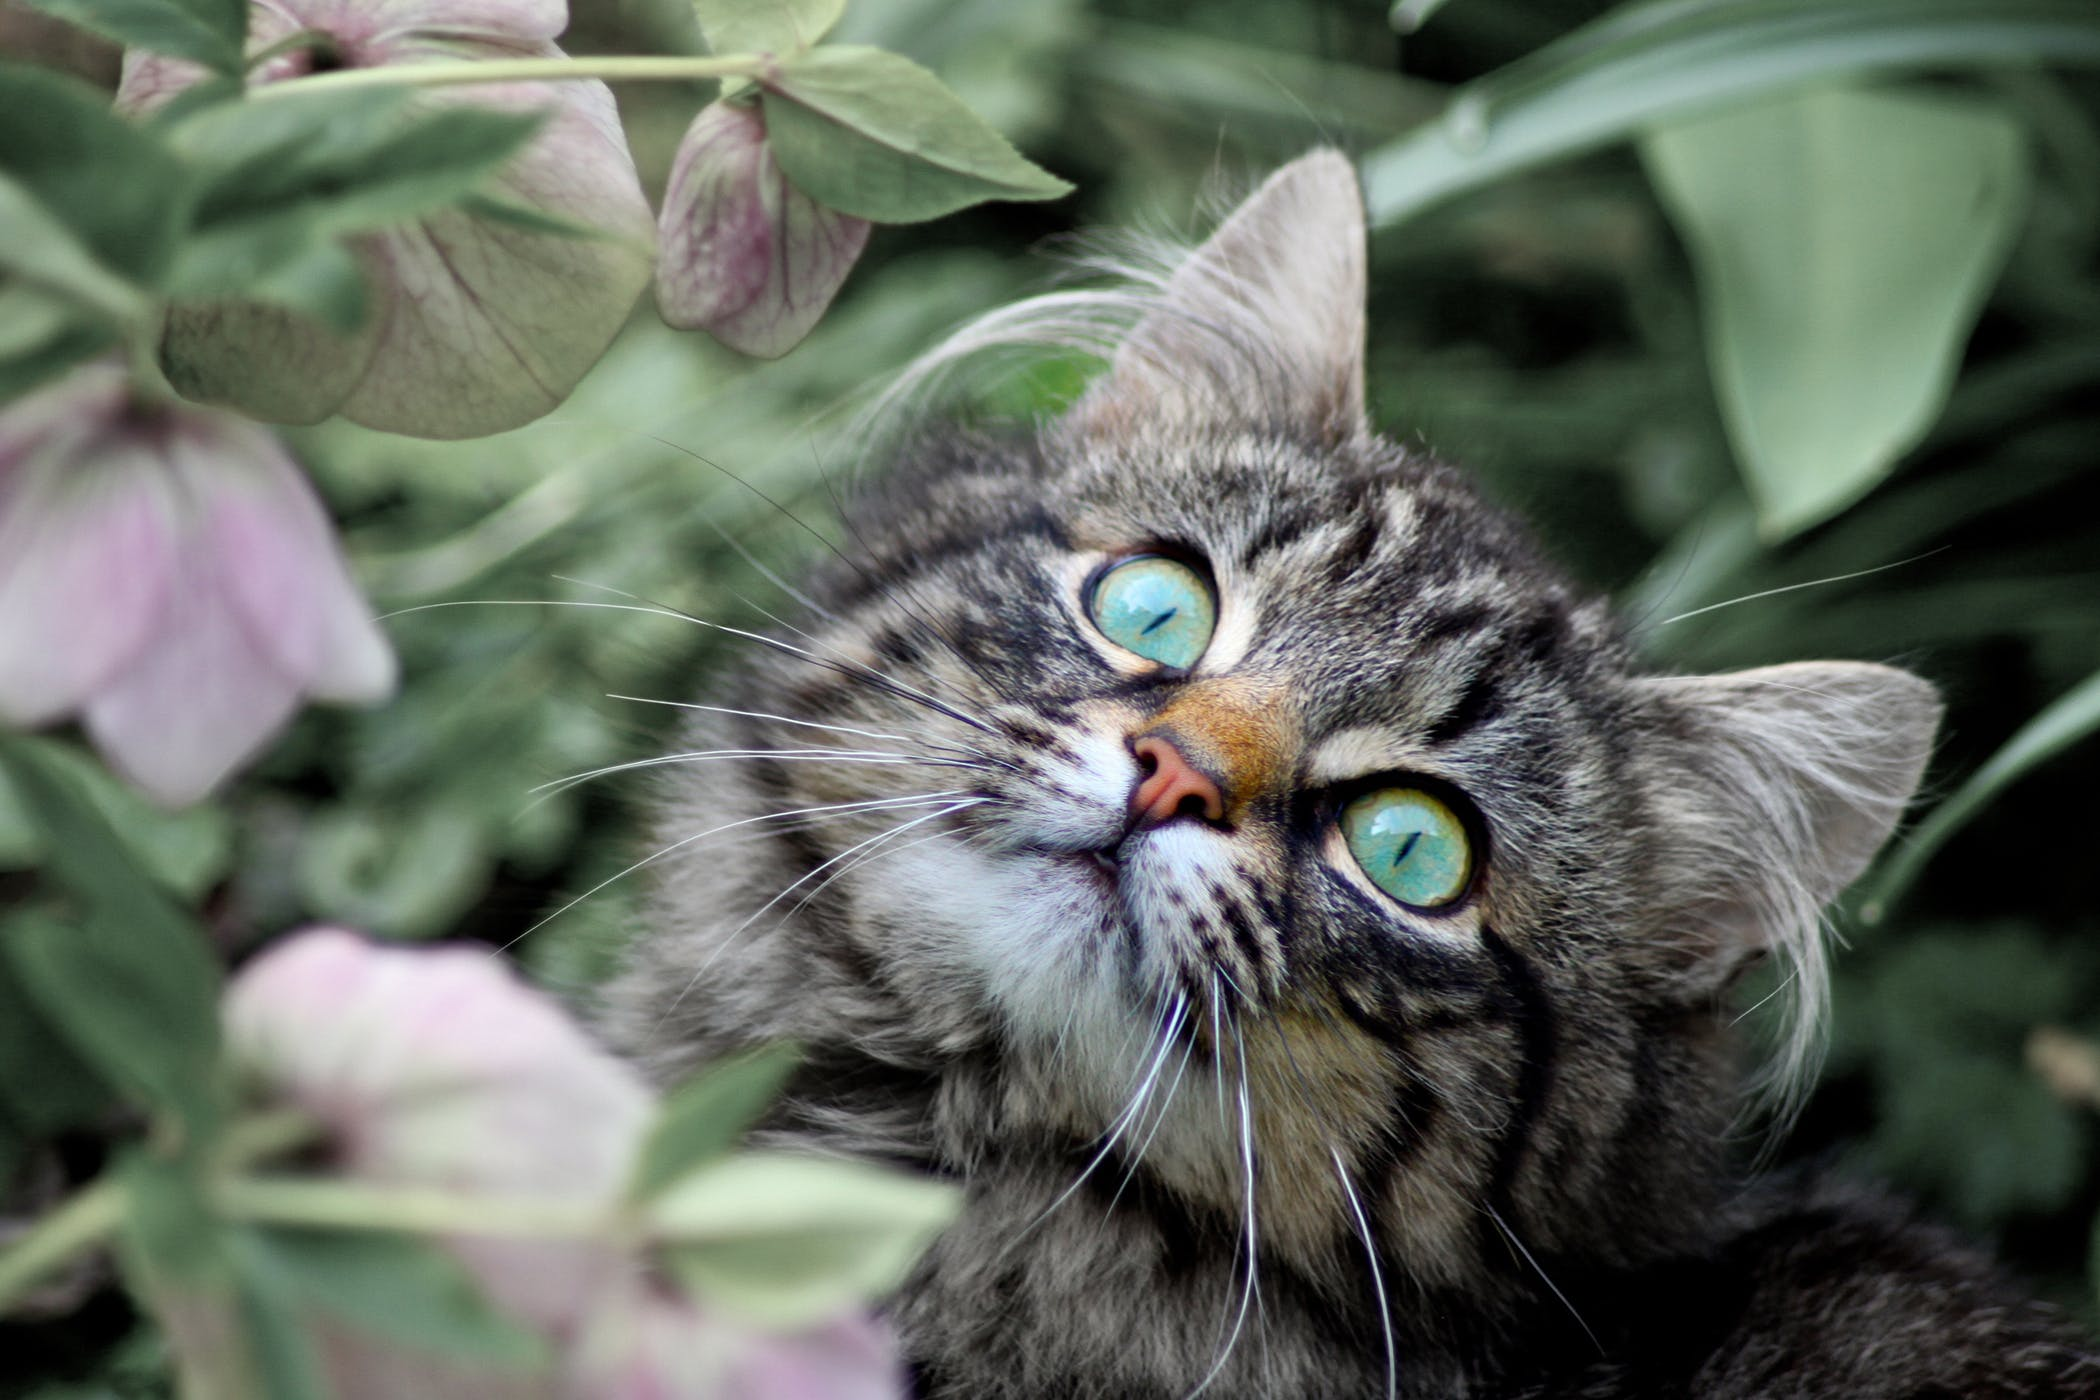 Adverse Reaction to Rabies Vaccine in Cats - Symptoms